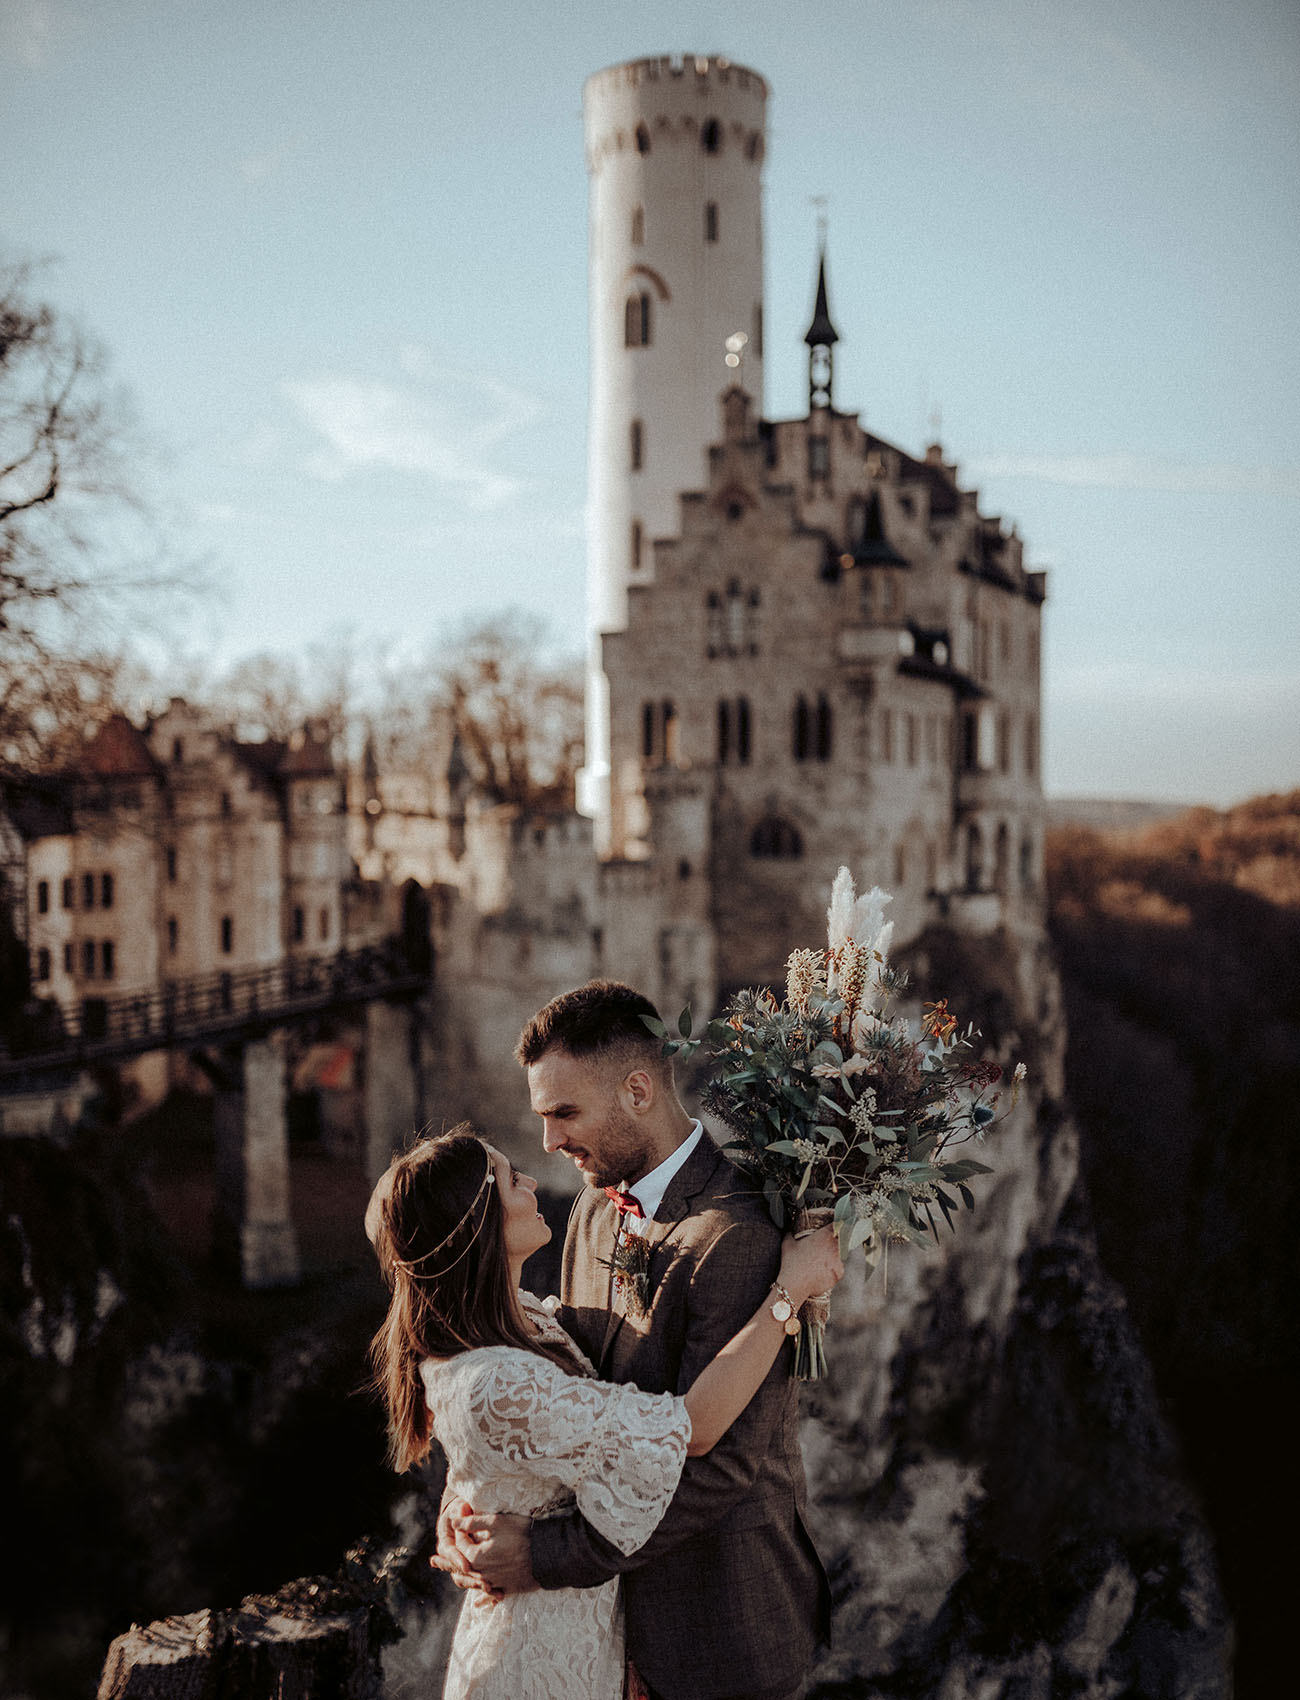 Boho Elopement Inspiration at a Gothic Revival-Style Castle in Germany